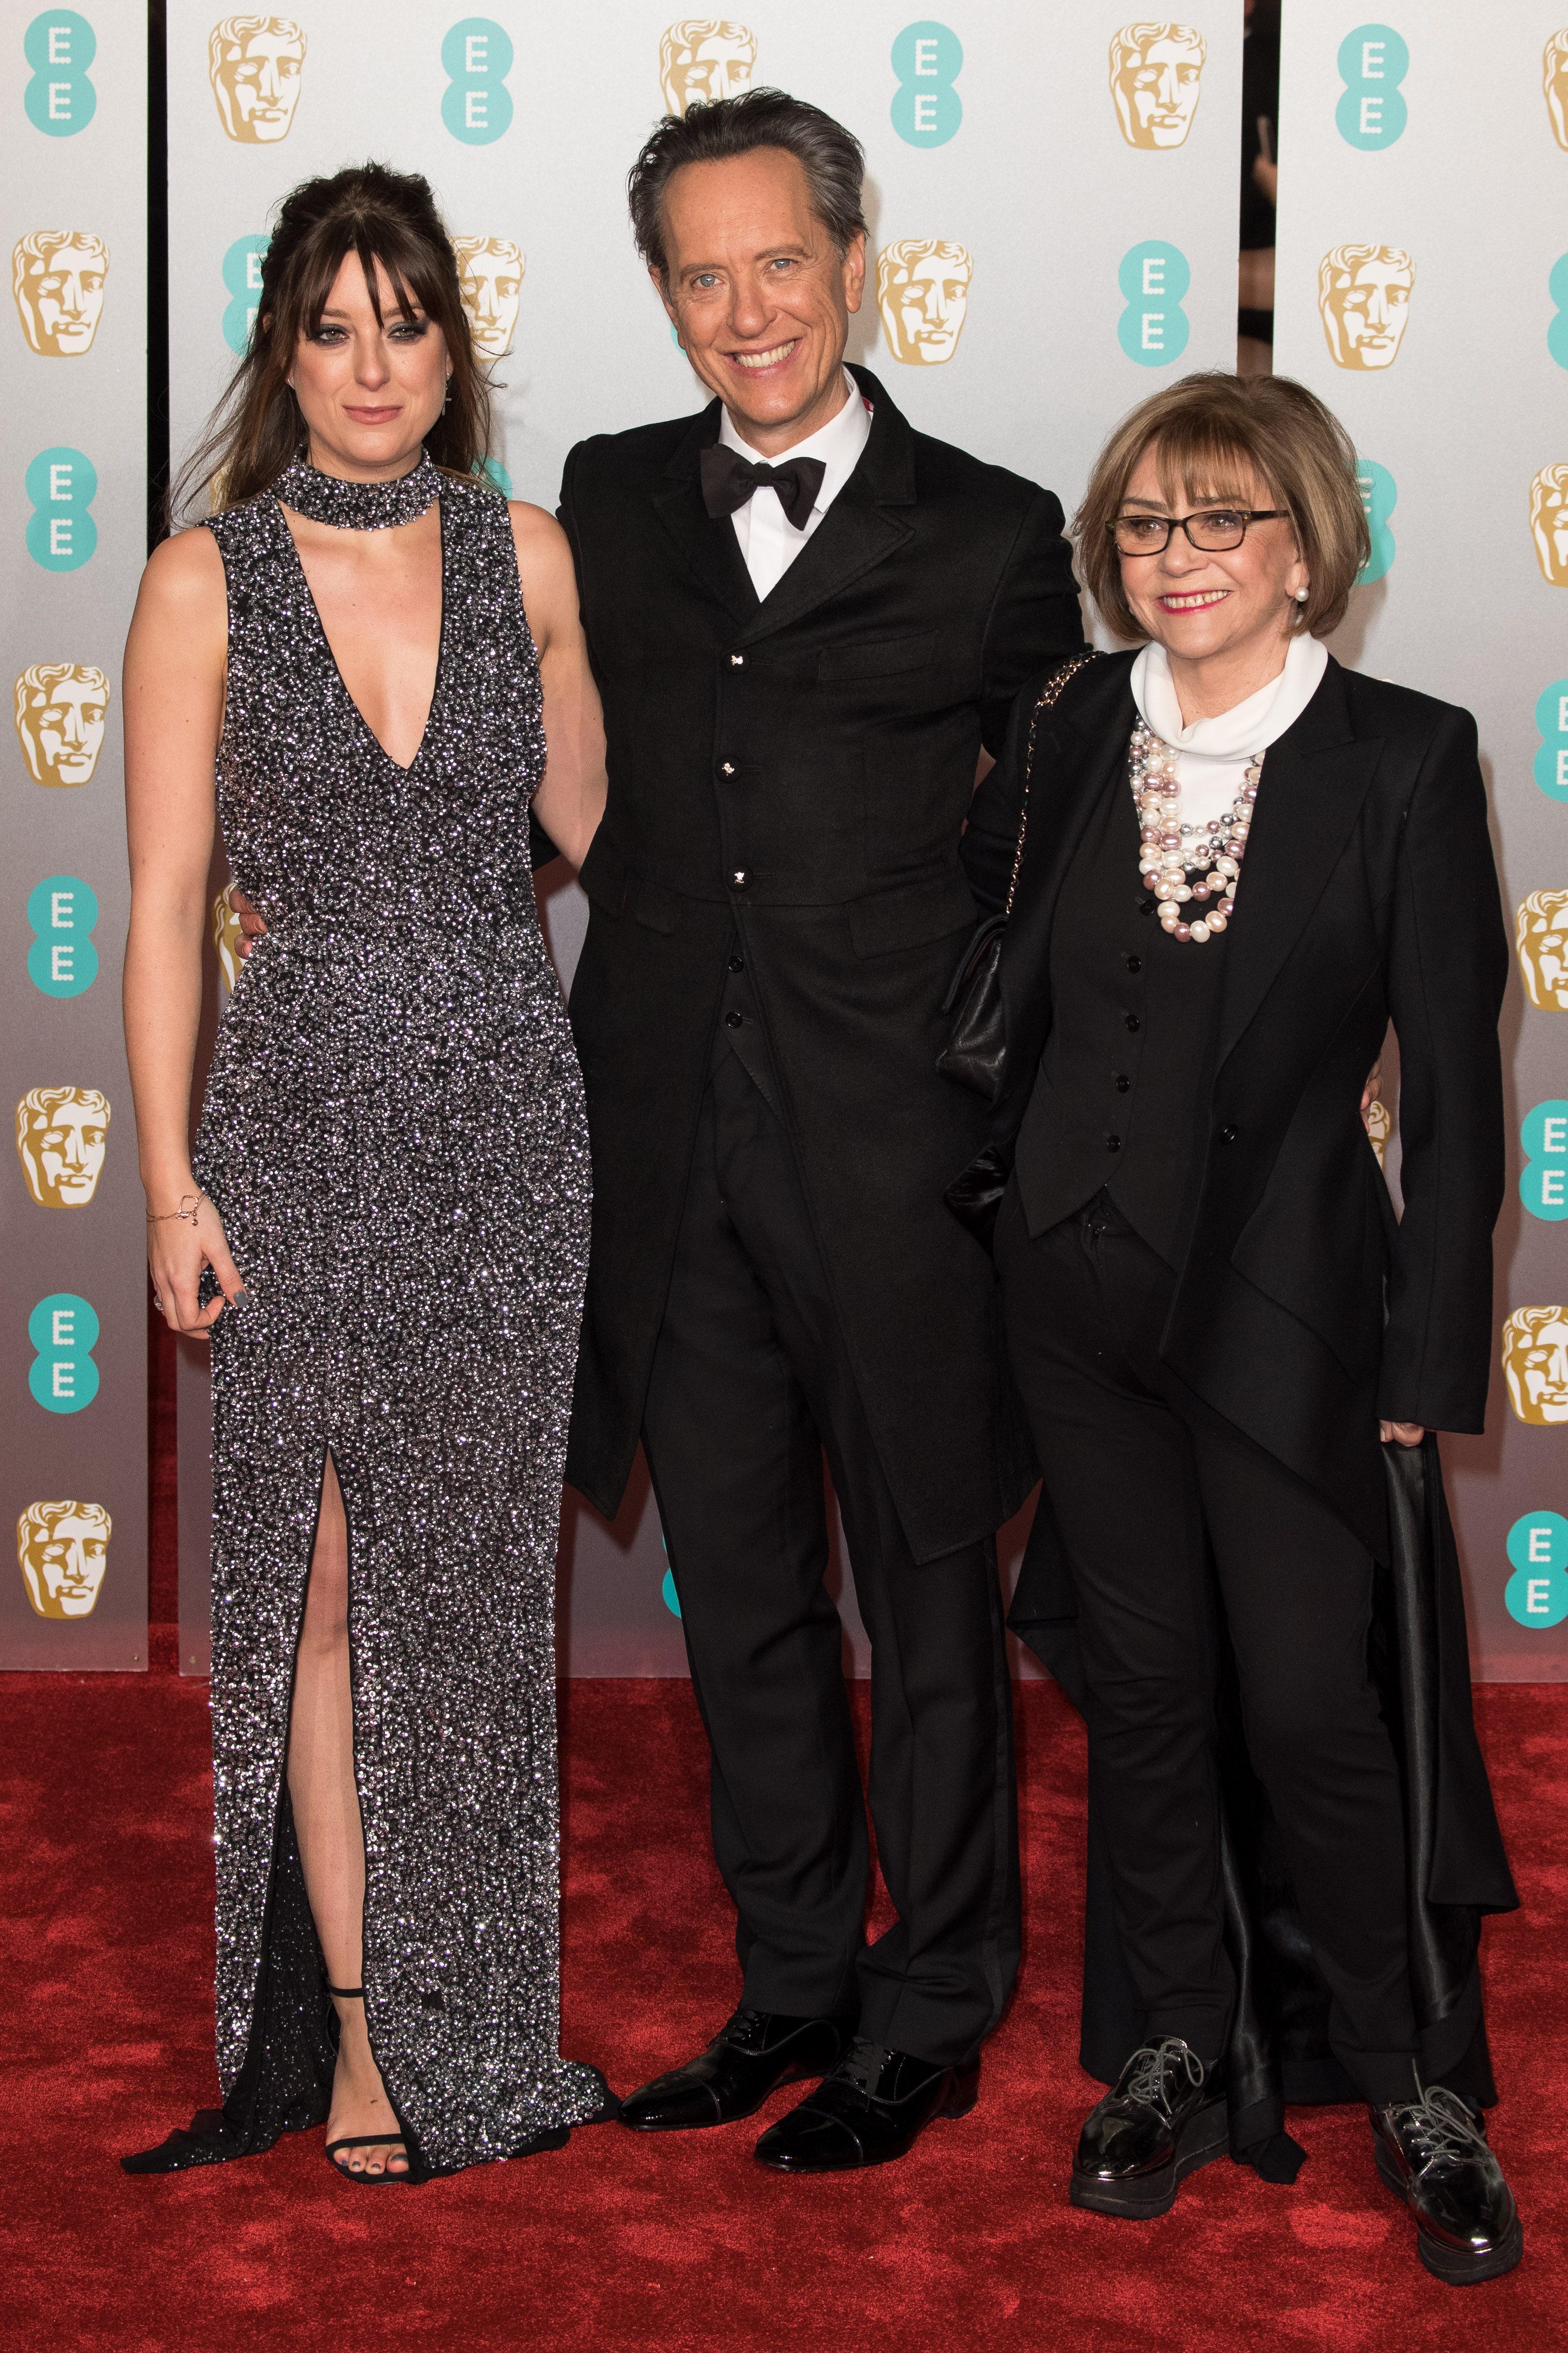 Richard E. Grant with daughter Olivia (left) and wife Joan Washington attend the EE British Academy Film Awards at Royal Albert Hall on February 10, 2019 in London, England.